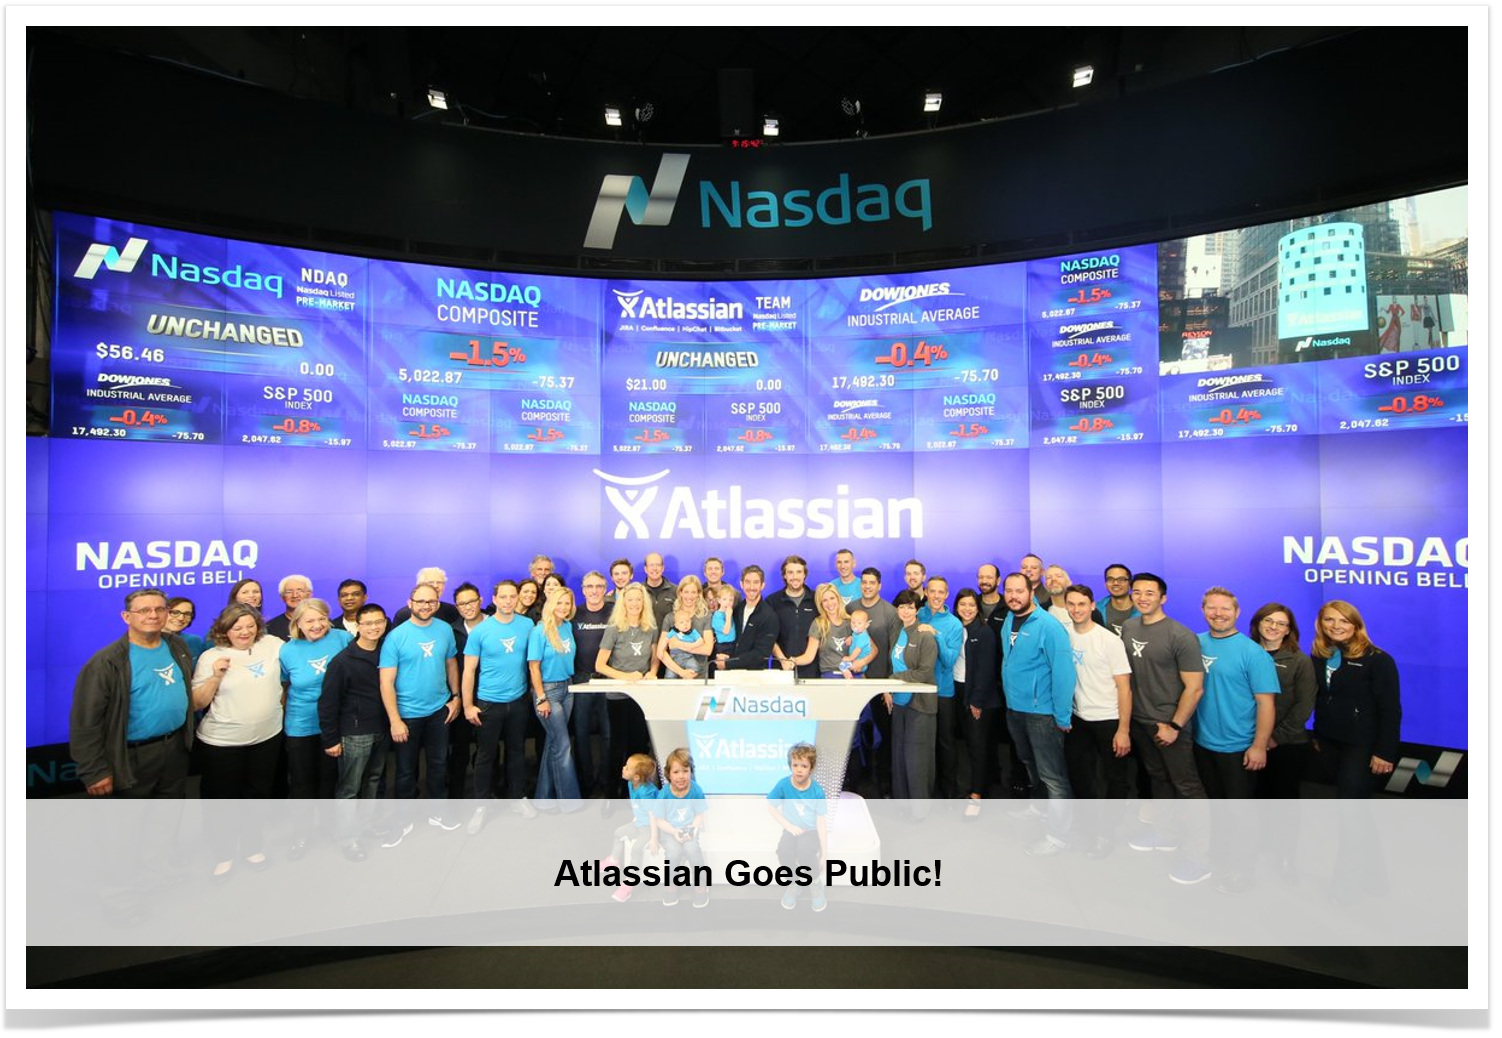 Atlassian goes public